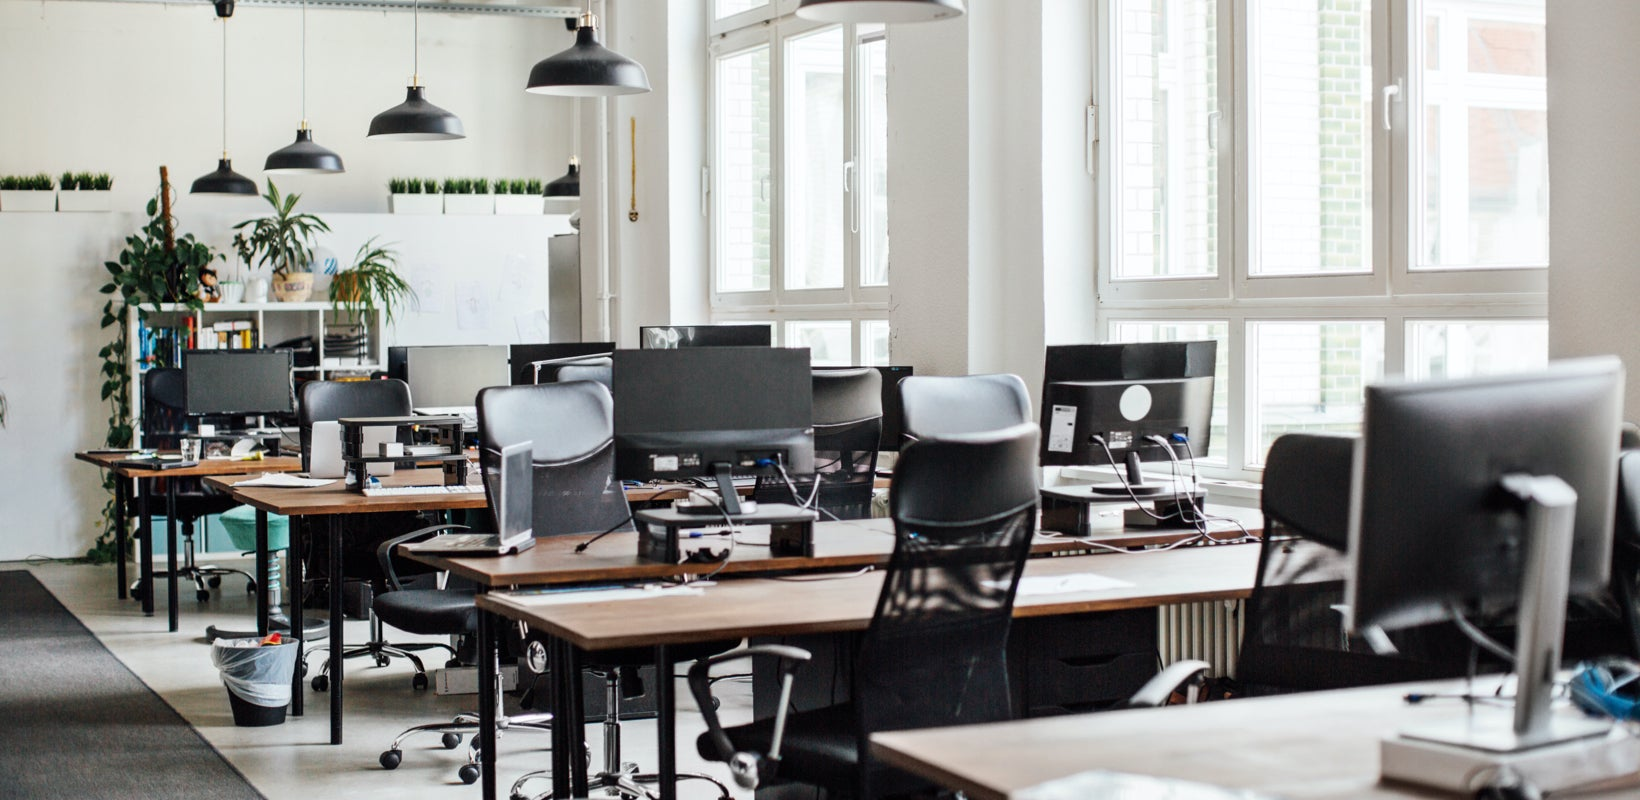 3 Smart Alternatives to Hot-Desking Your IT Team Should Try